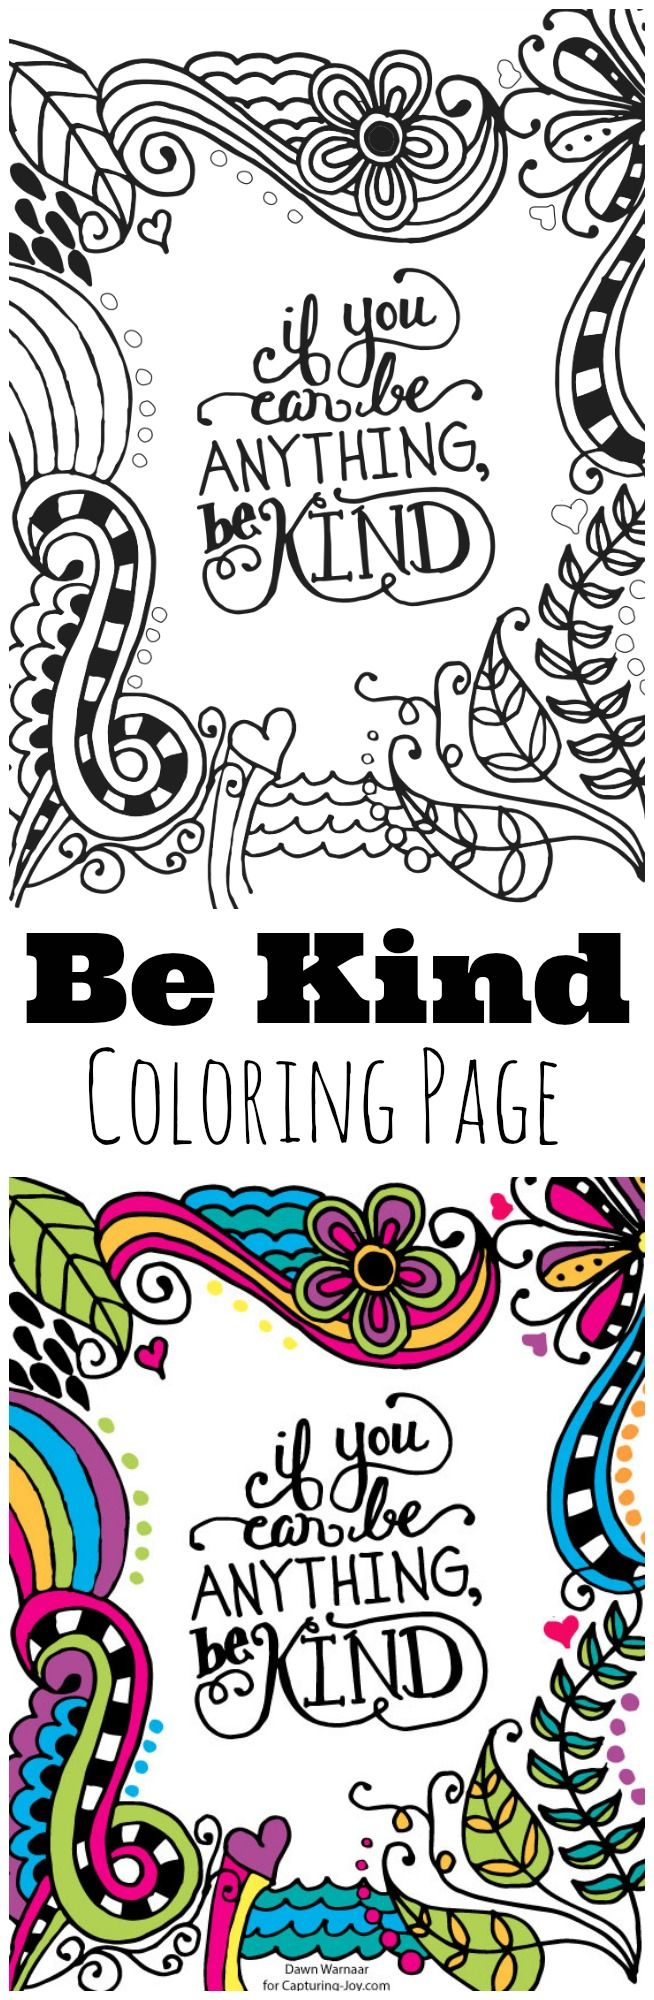 If You Can Be Anything Be Kind Kristen Duke Kindess Quotes Coloring Pages For Kids Coloring Pages Coloring For Kids